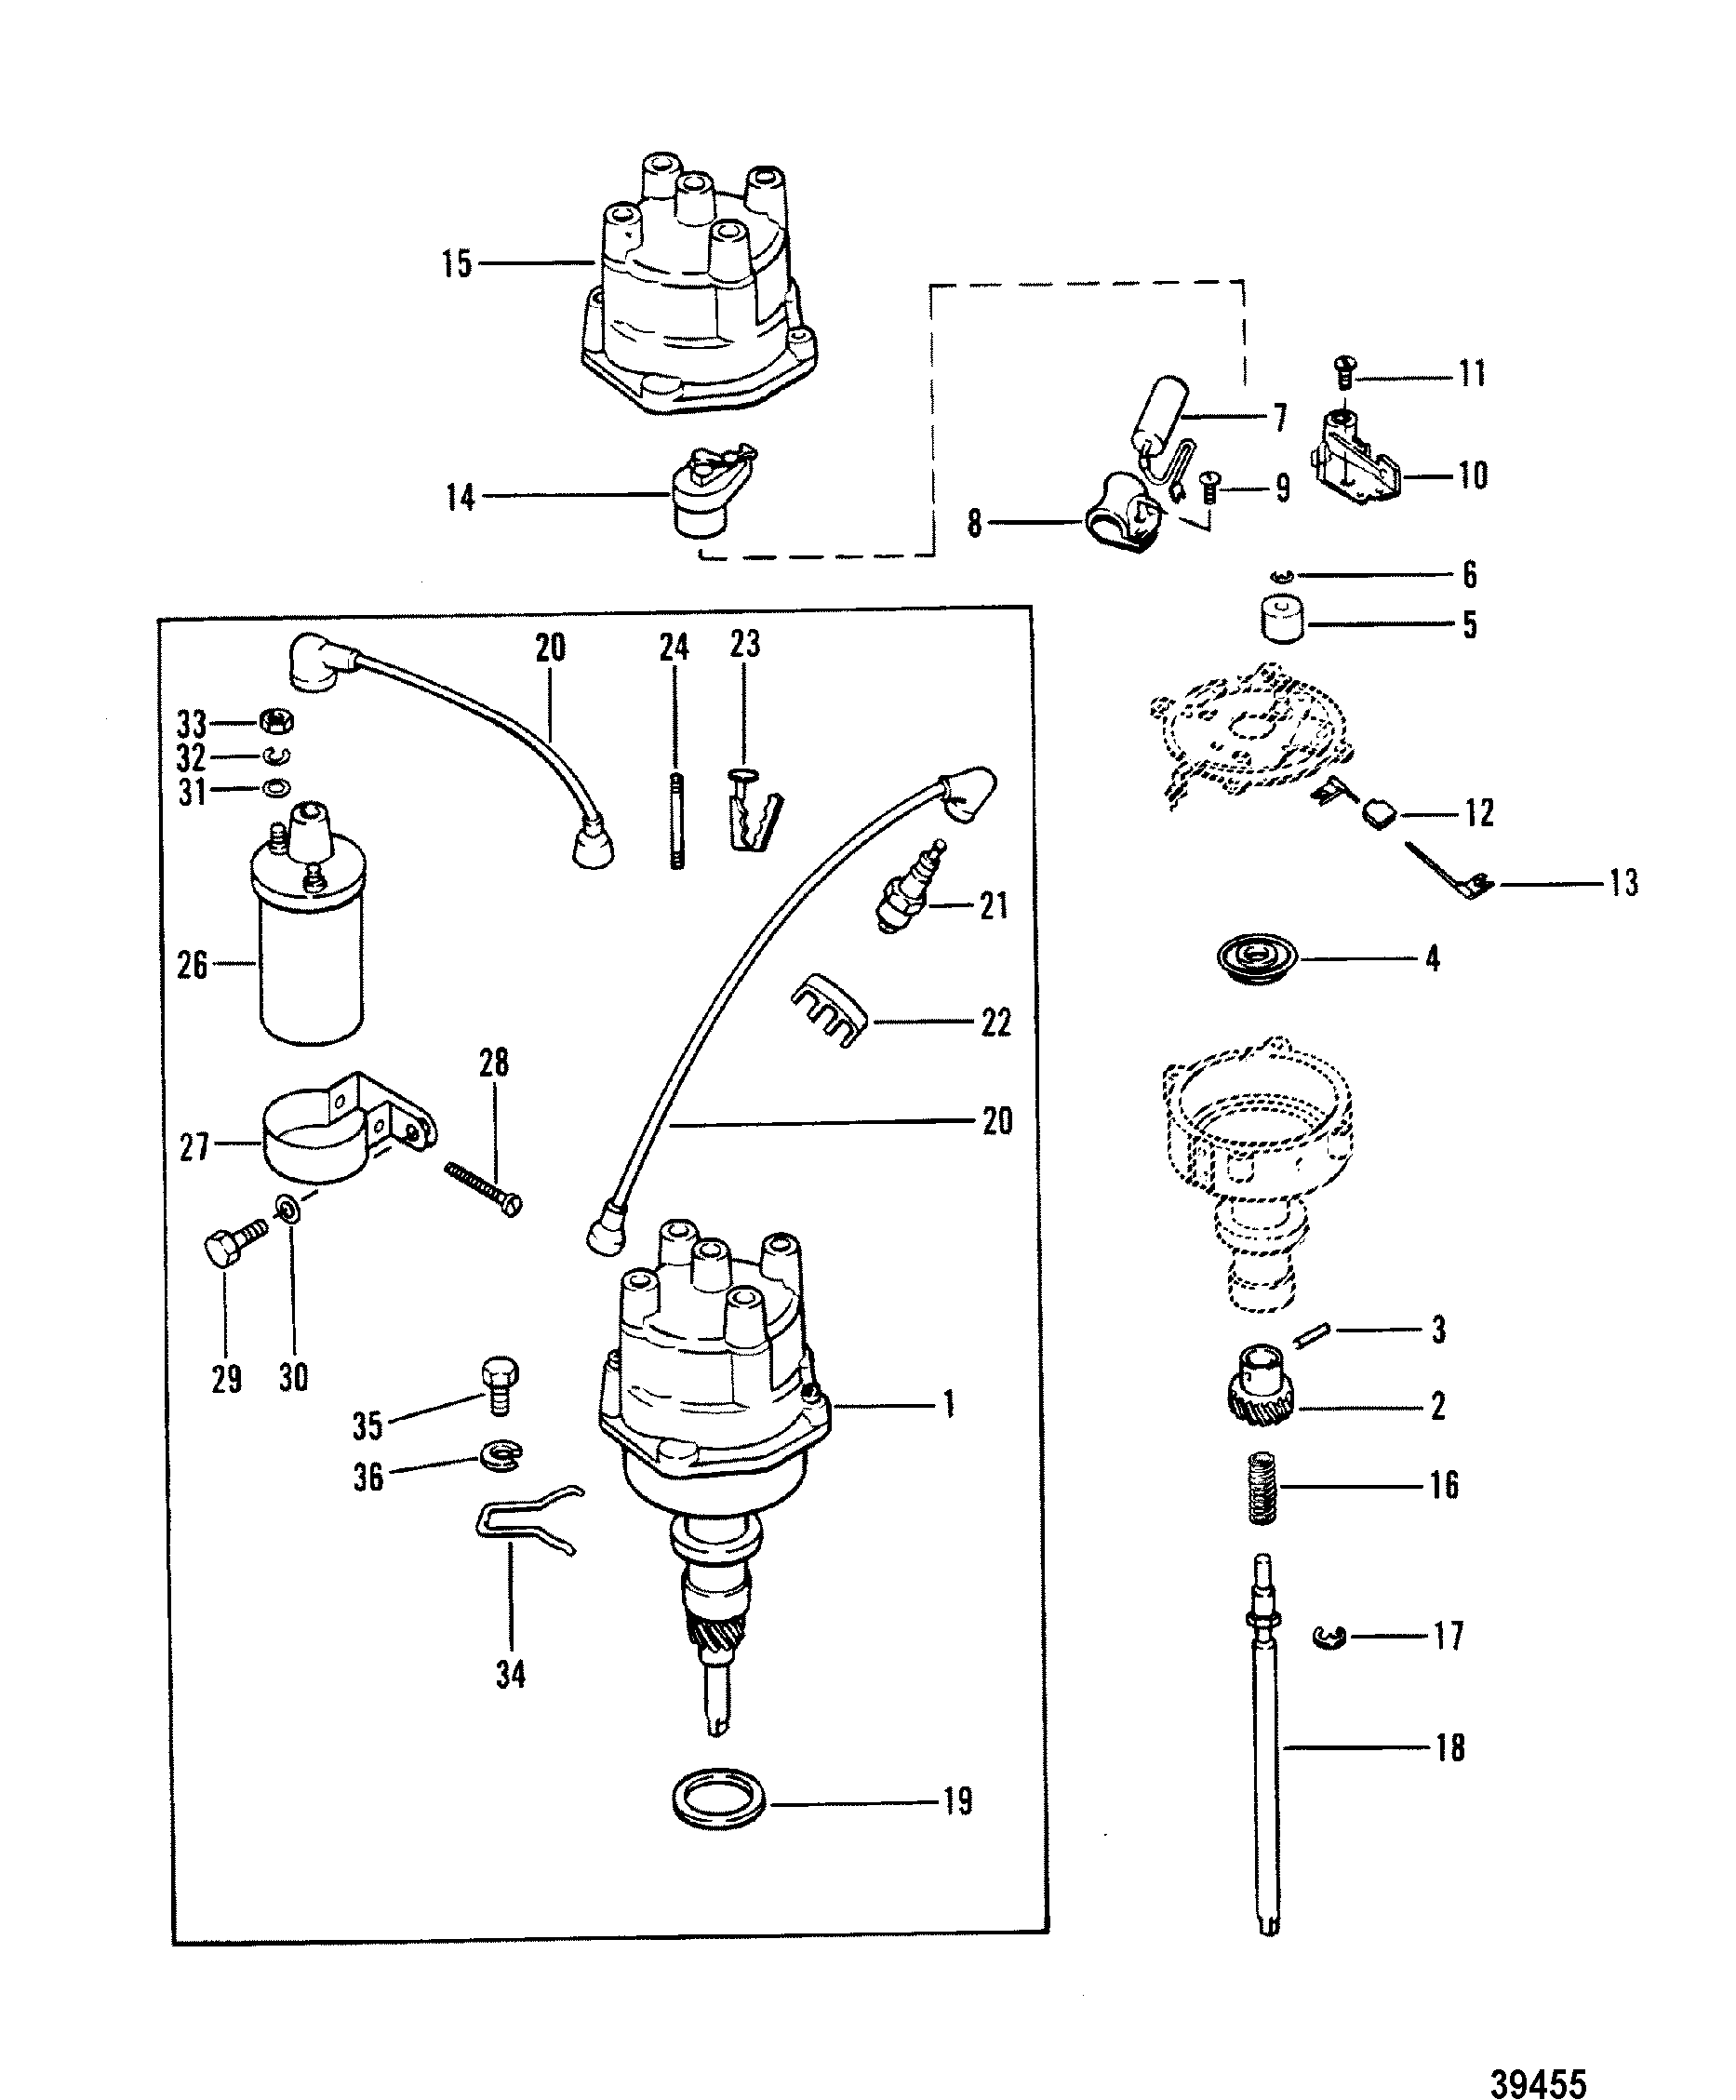 7 4 mercruiser distributor wiring diagram get free image about wiring diagram